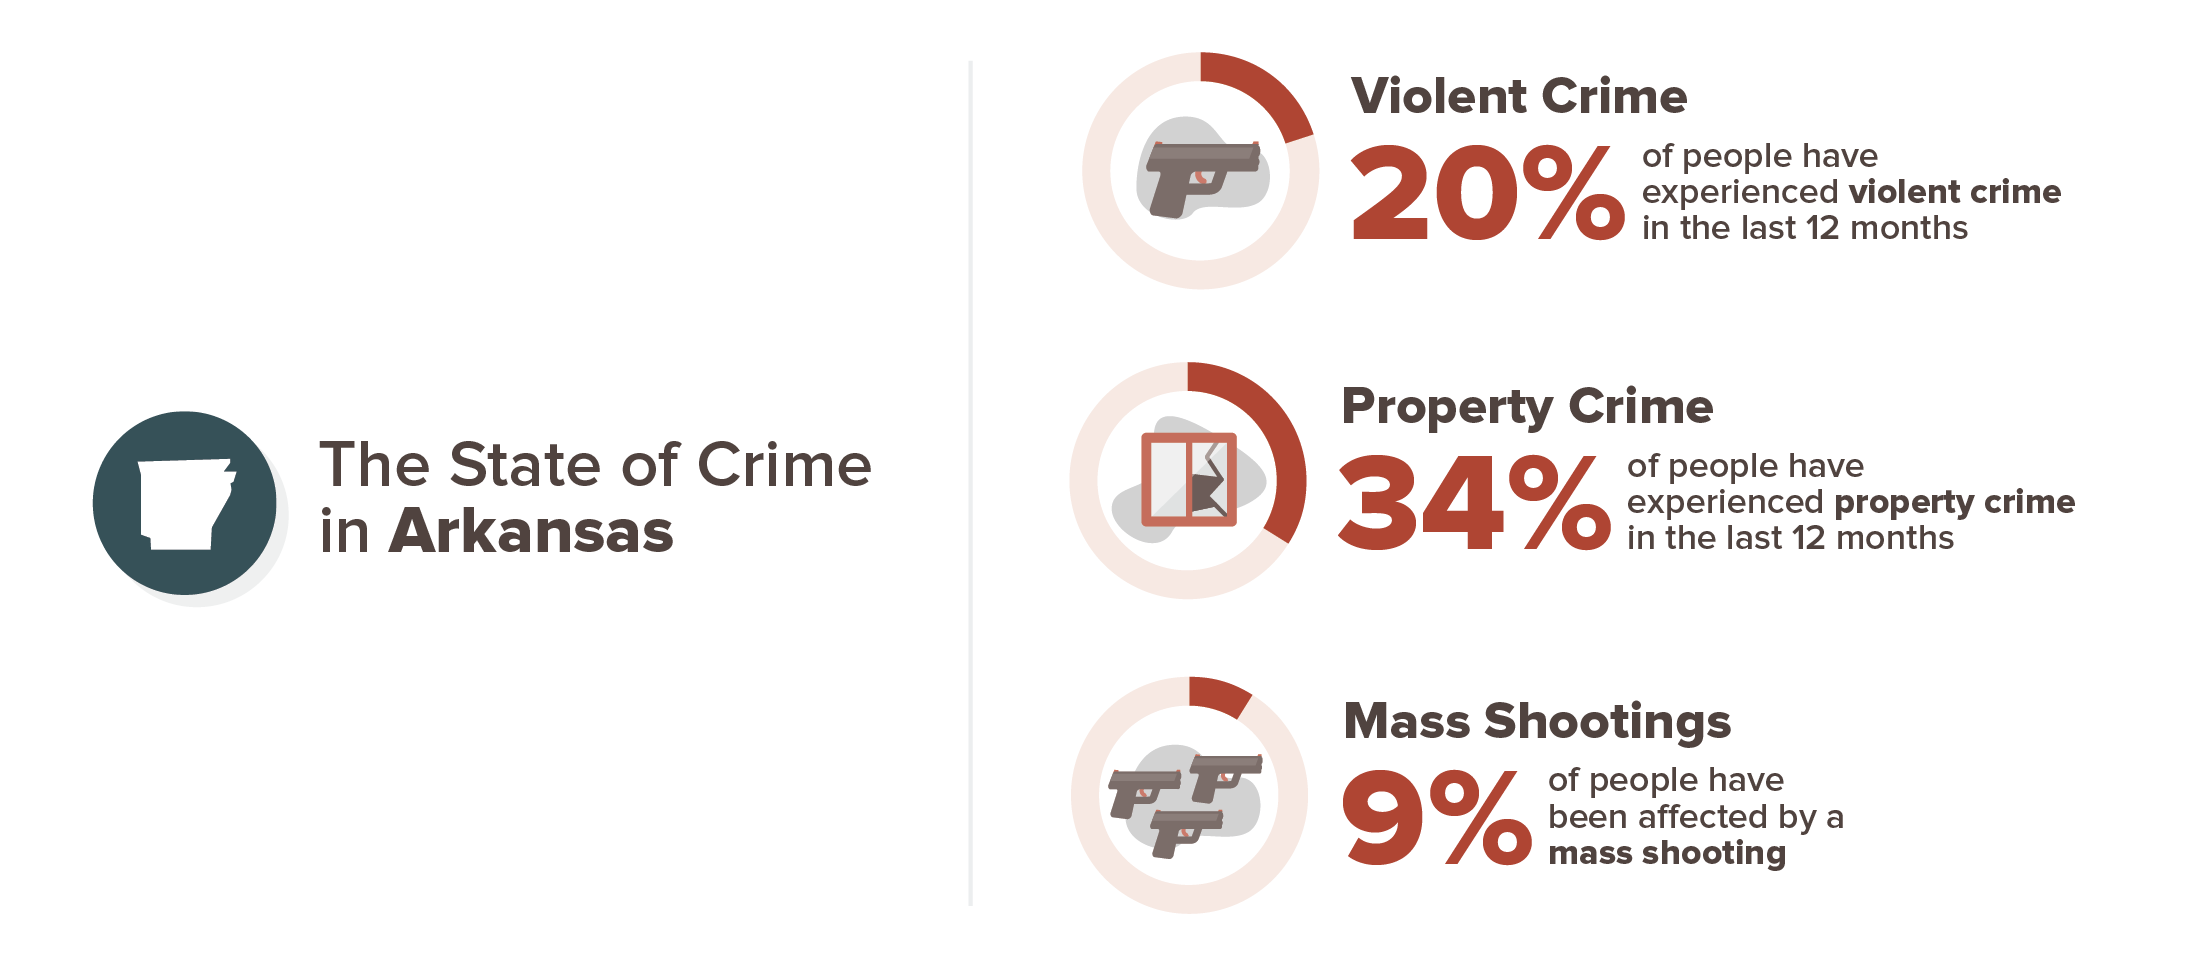 Arkansas crime experience infographic; 20% violent crime, 34% property crime, 9% mass shooting